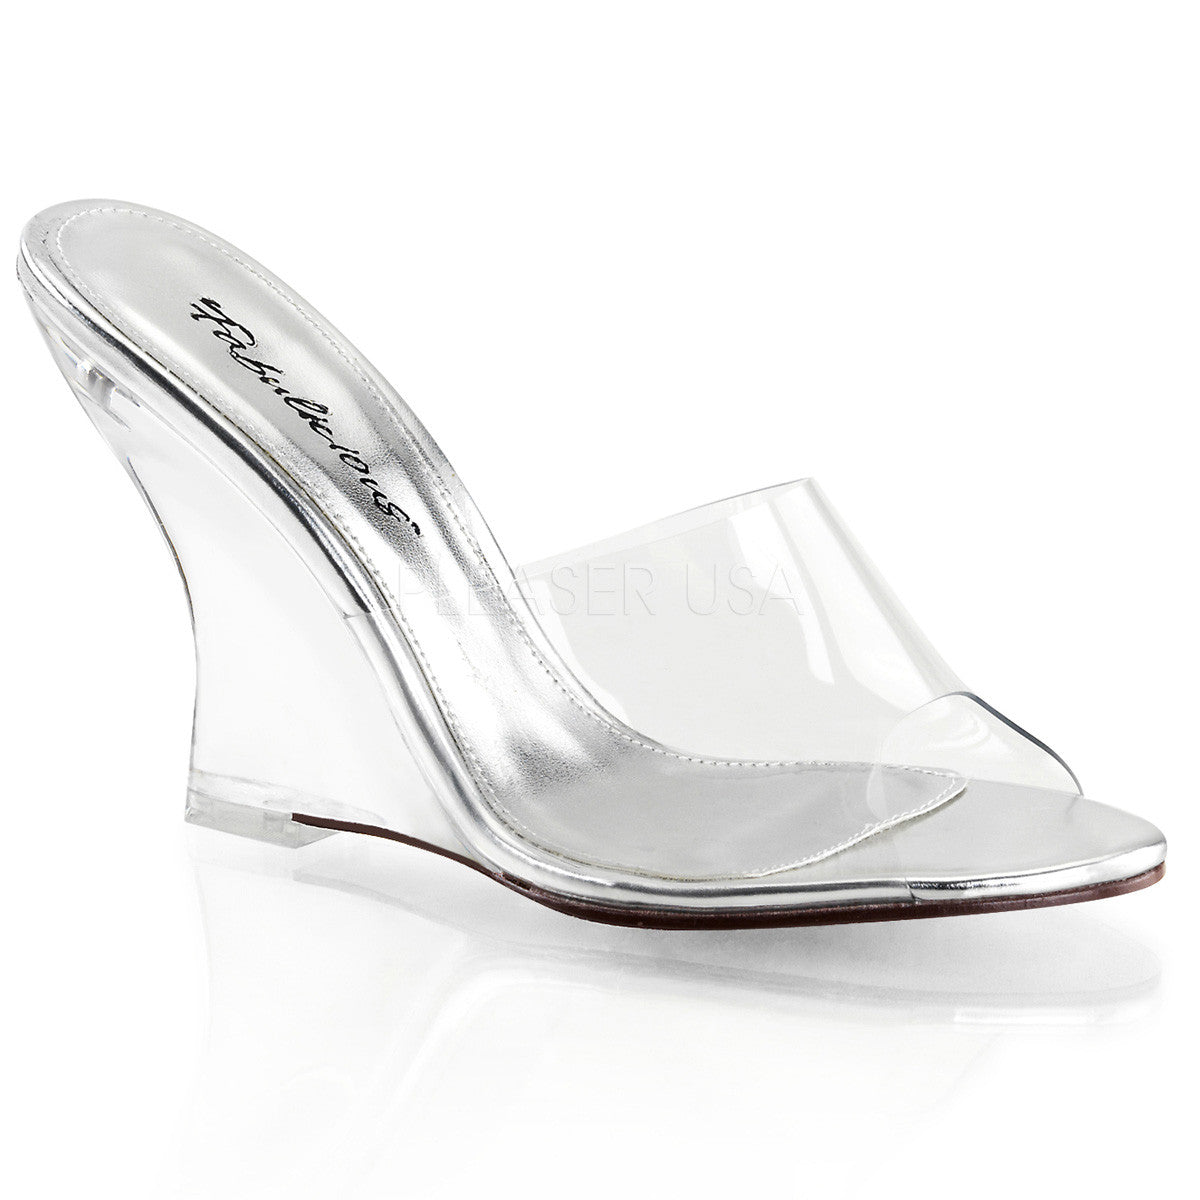 FABULICIOUS LOVELY-401 Clear-Clear Wedges - Shoecup.com